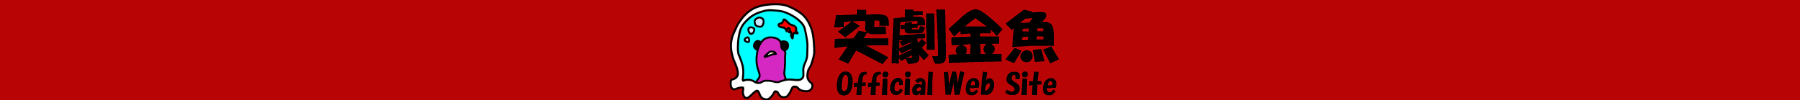 突劇金魚Official Web Site